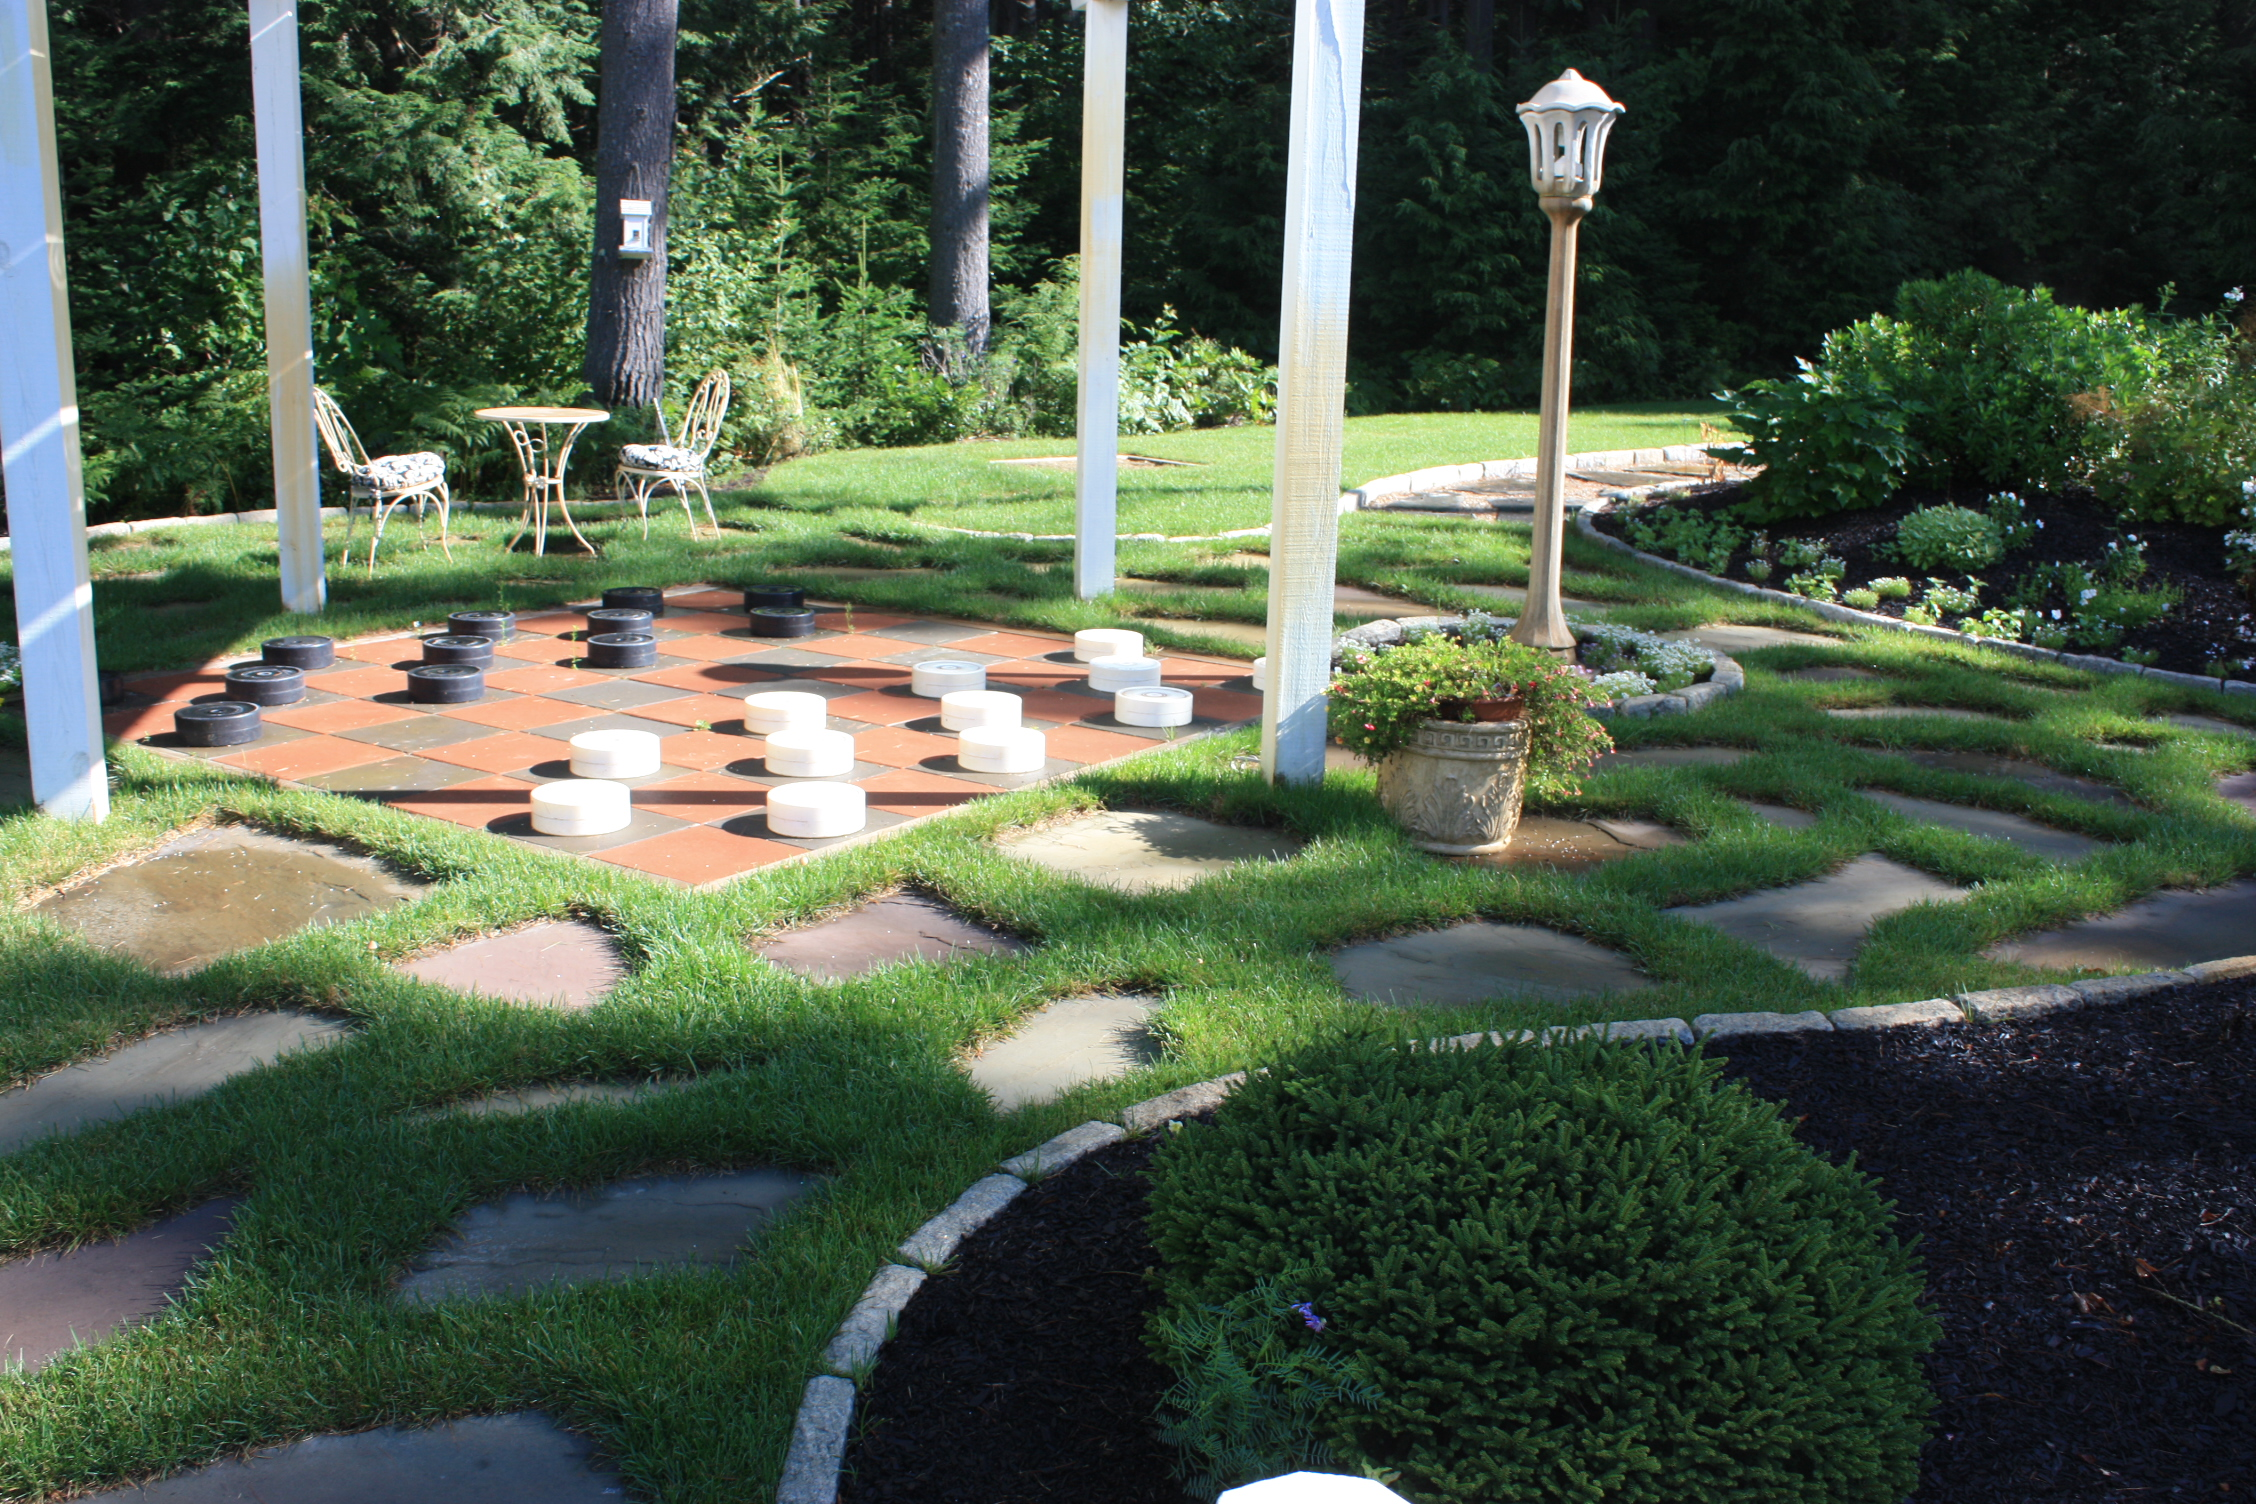 Kdi landscaping grounds maintenance complete for Complete garden services